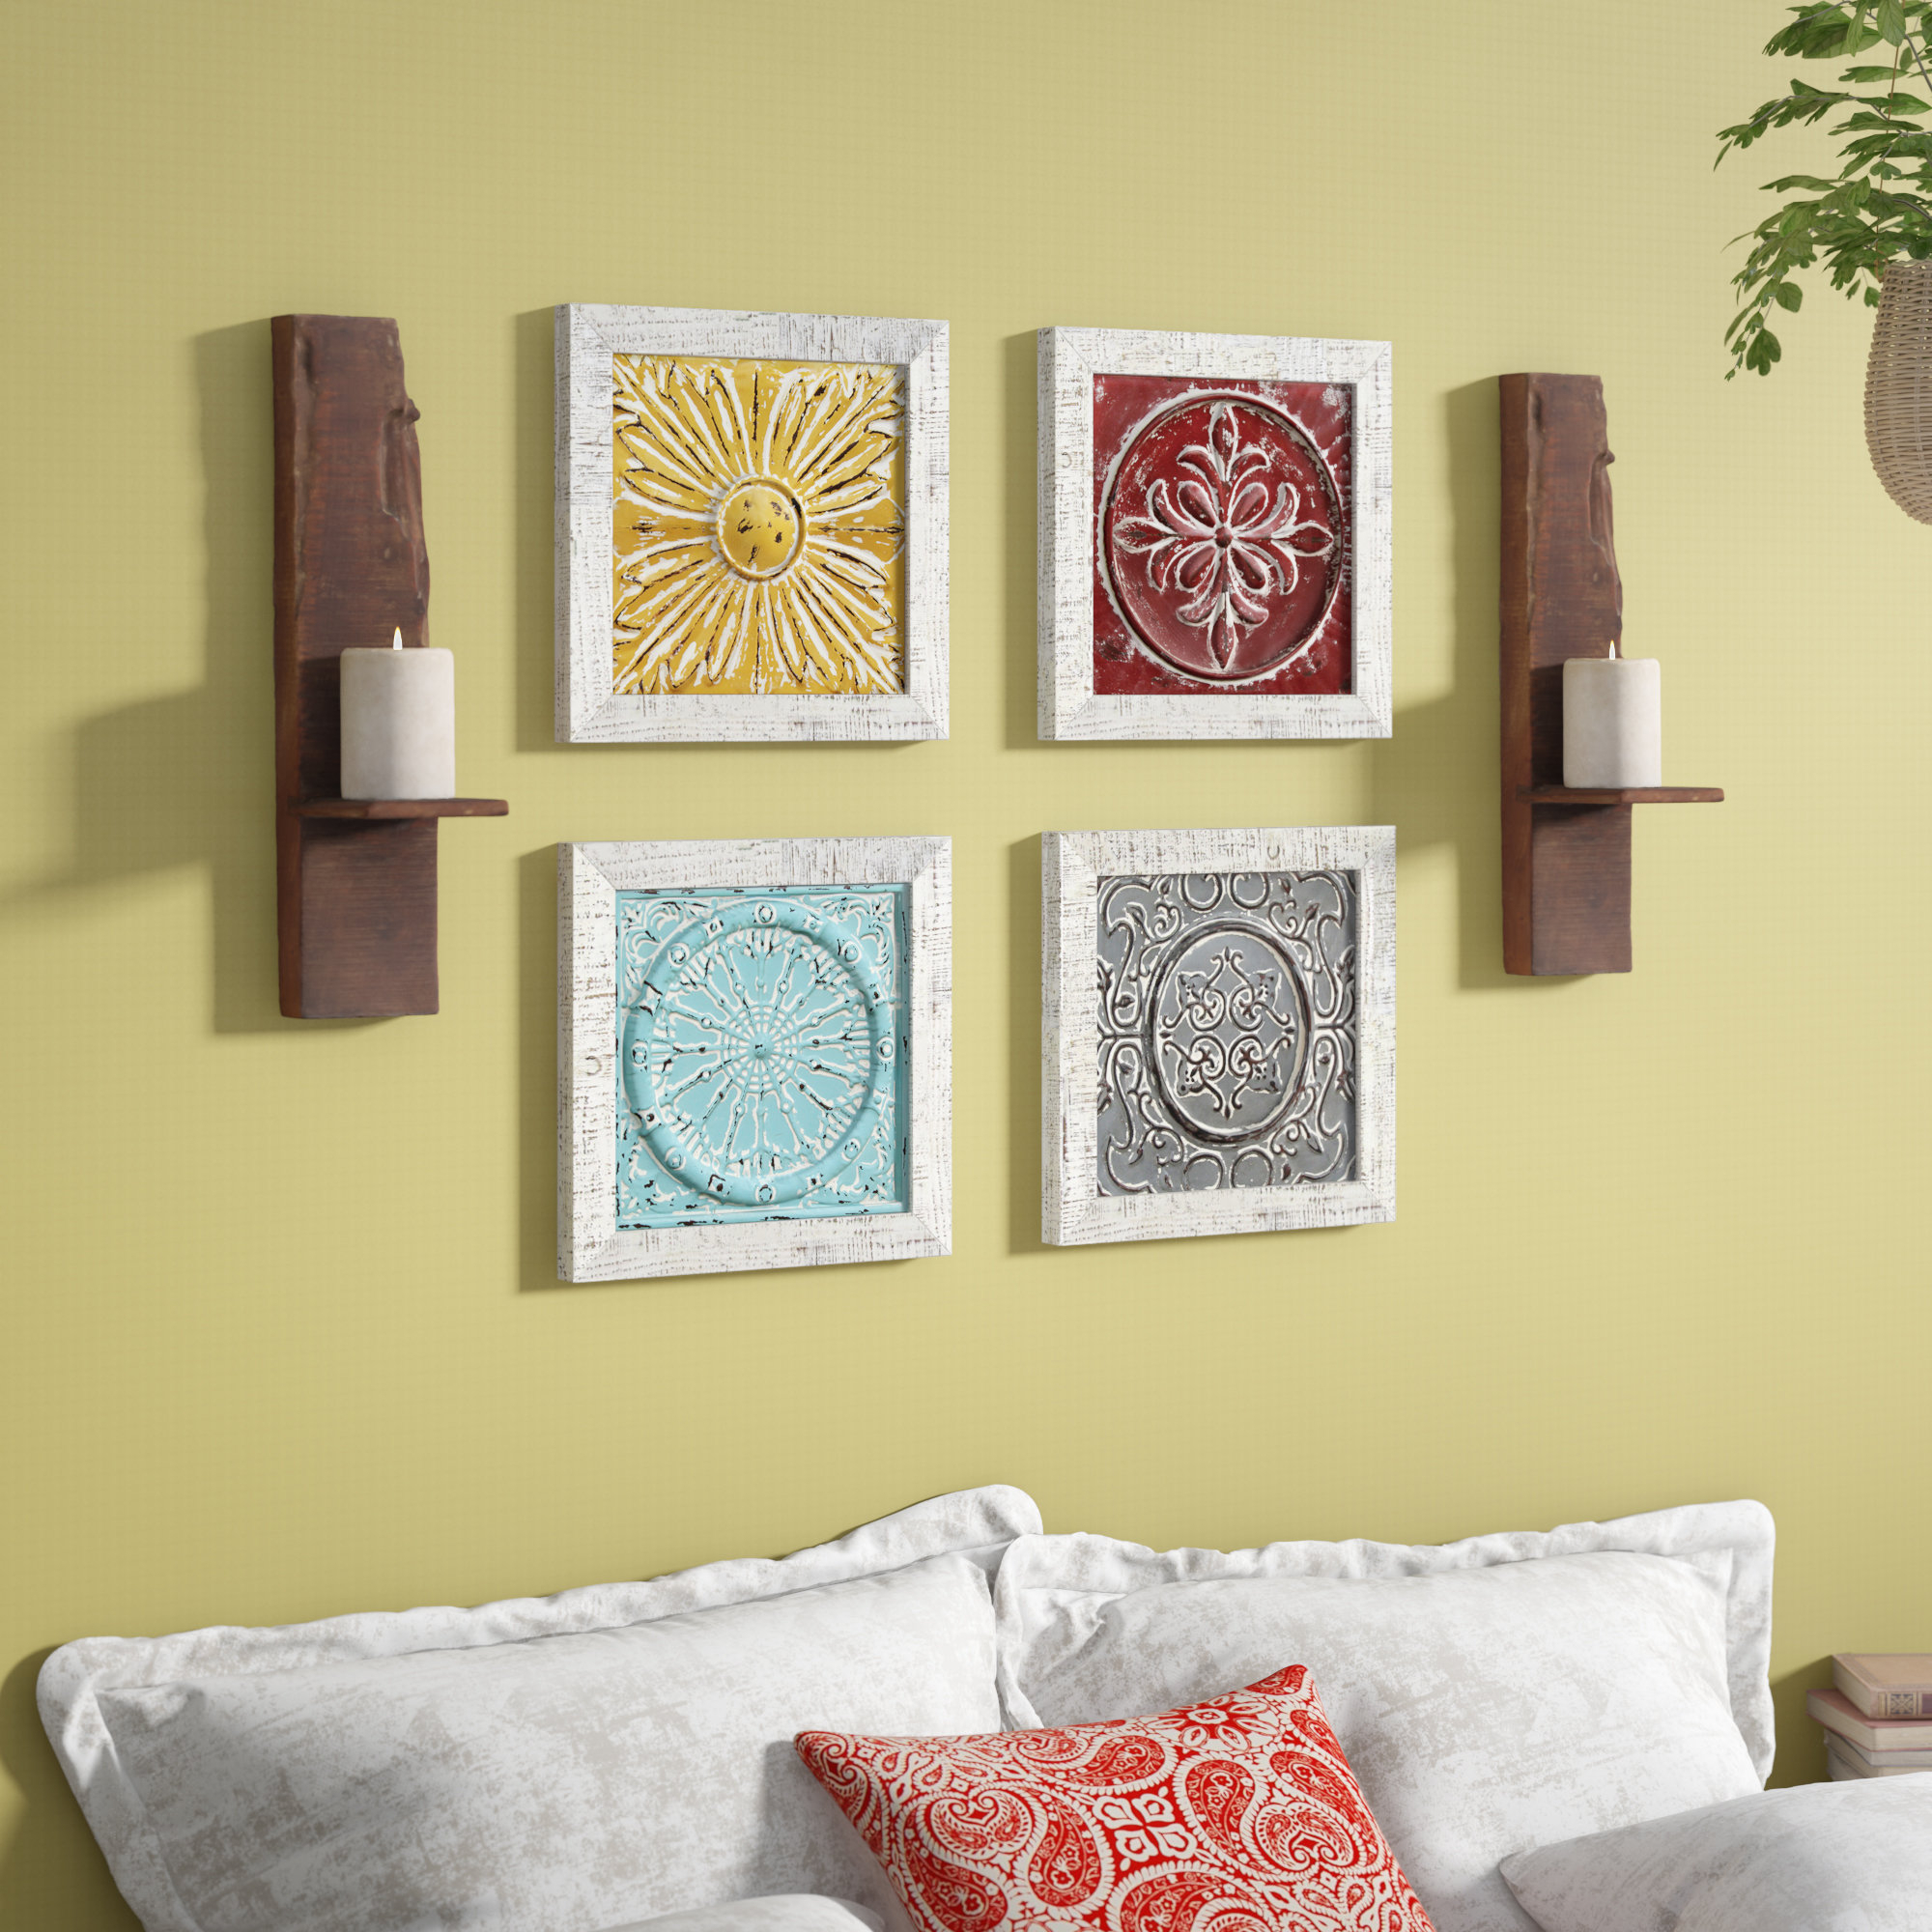 4 Piece Accent Tile Wall Décor Set With Regard To 4 Piece Wall Decor Sets (View 9 of 30)